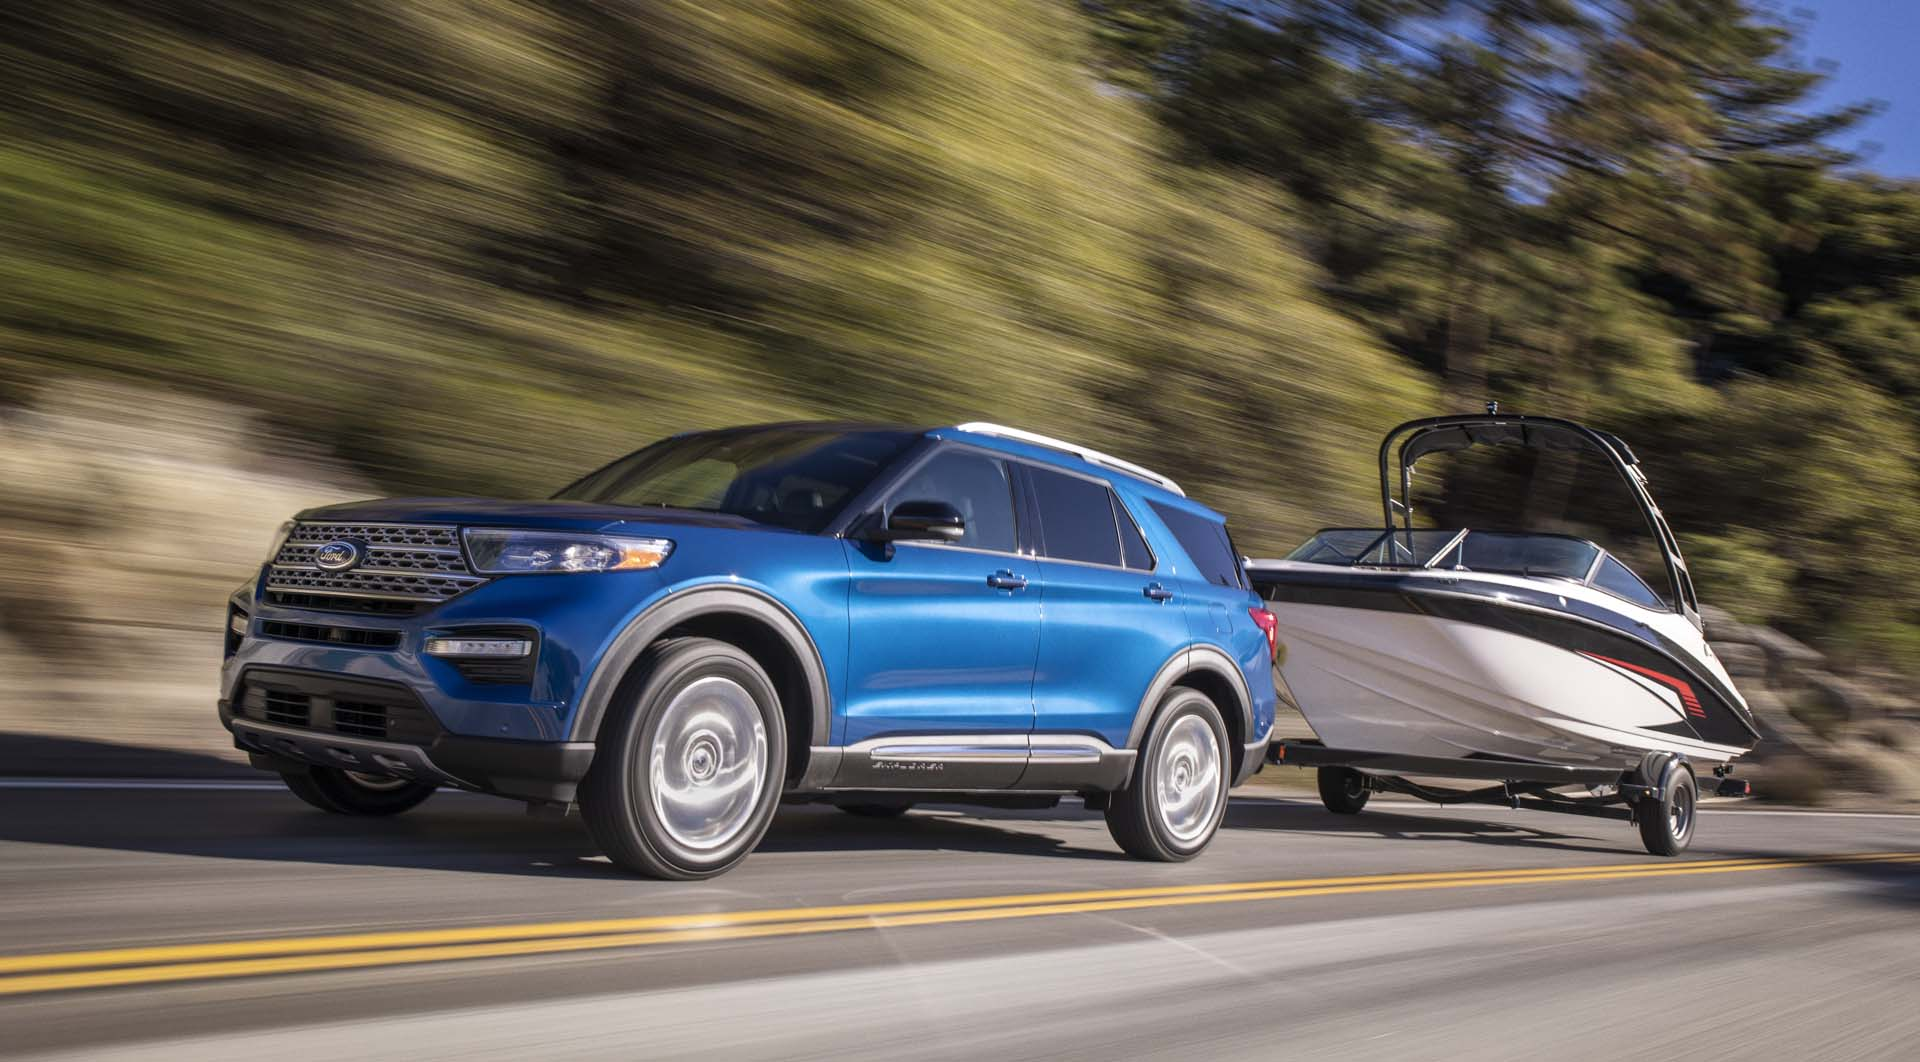 2020 Ford Explorer Fights Punctures With Self Sealing Tires